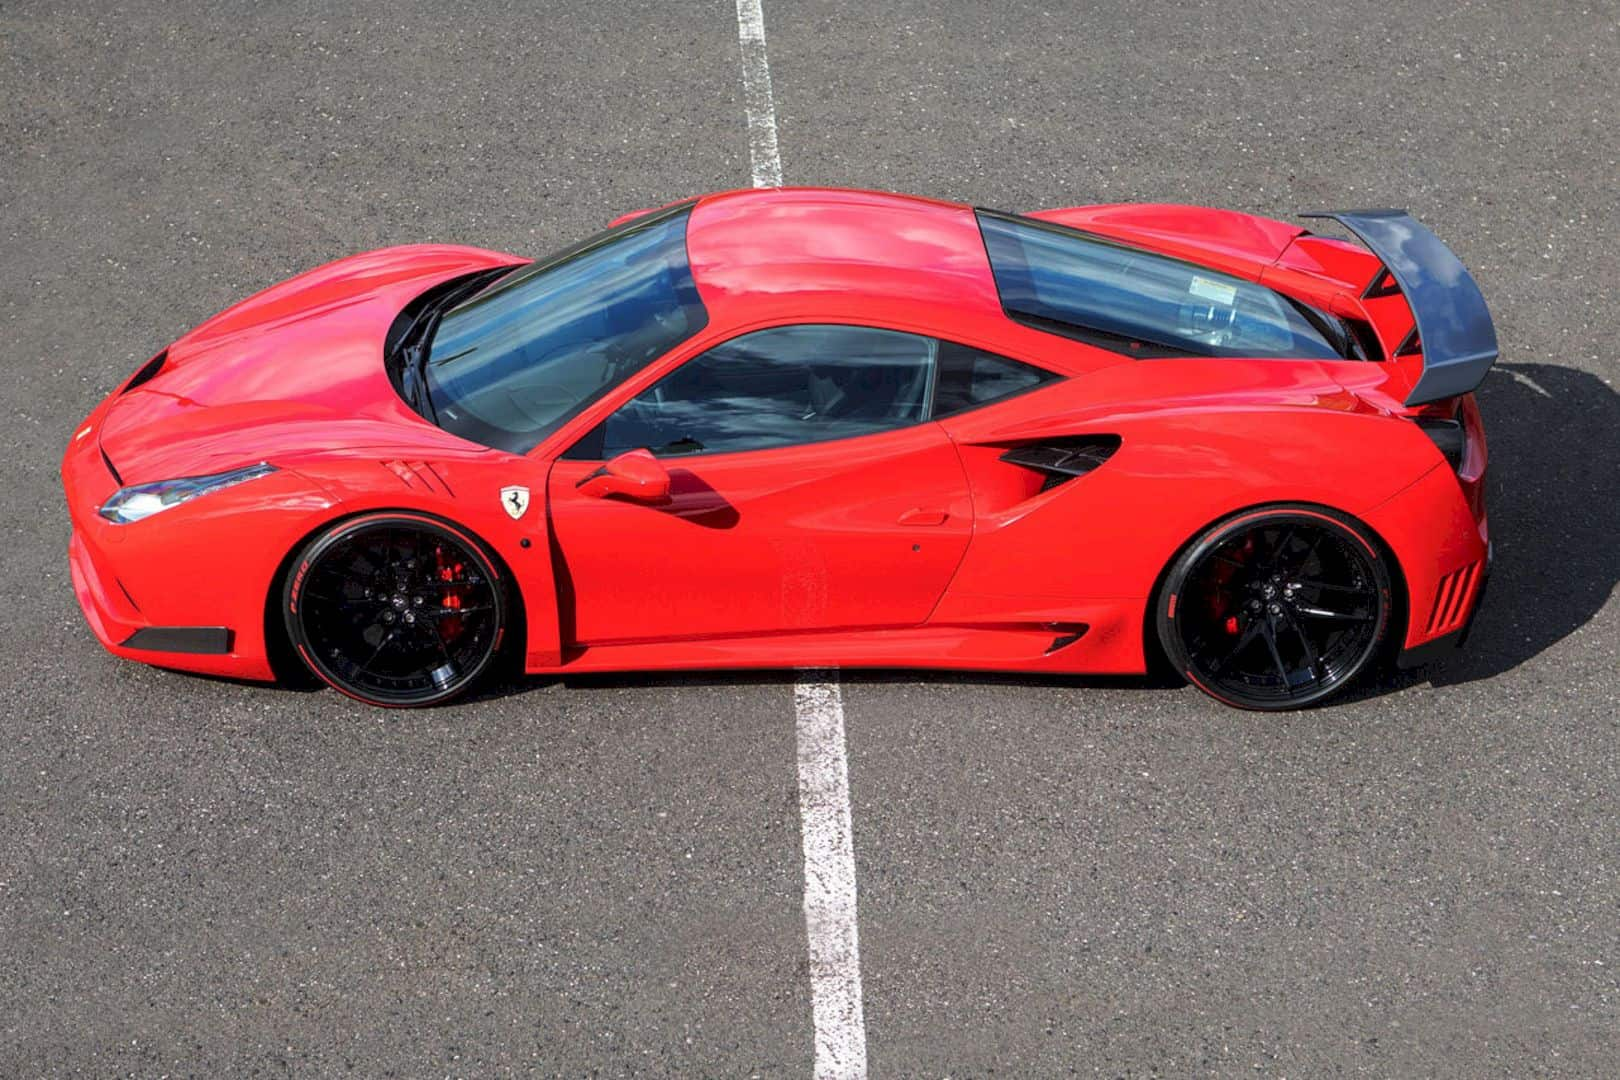 Redefine Glamour with Revamp Edition of Ferrari 488 GTB N-Largo by Novitec